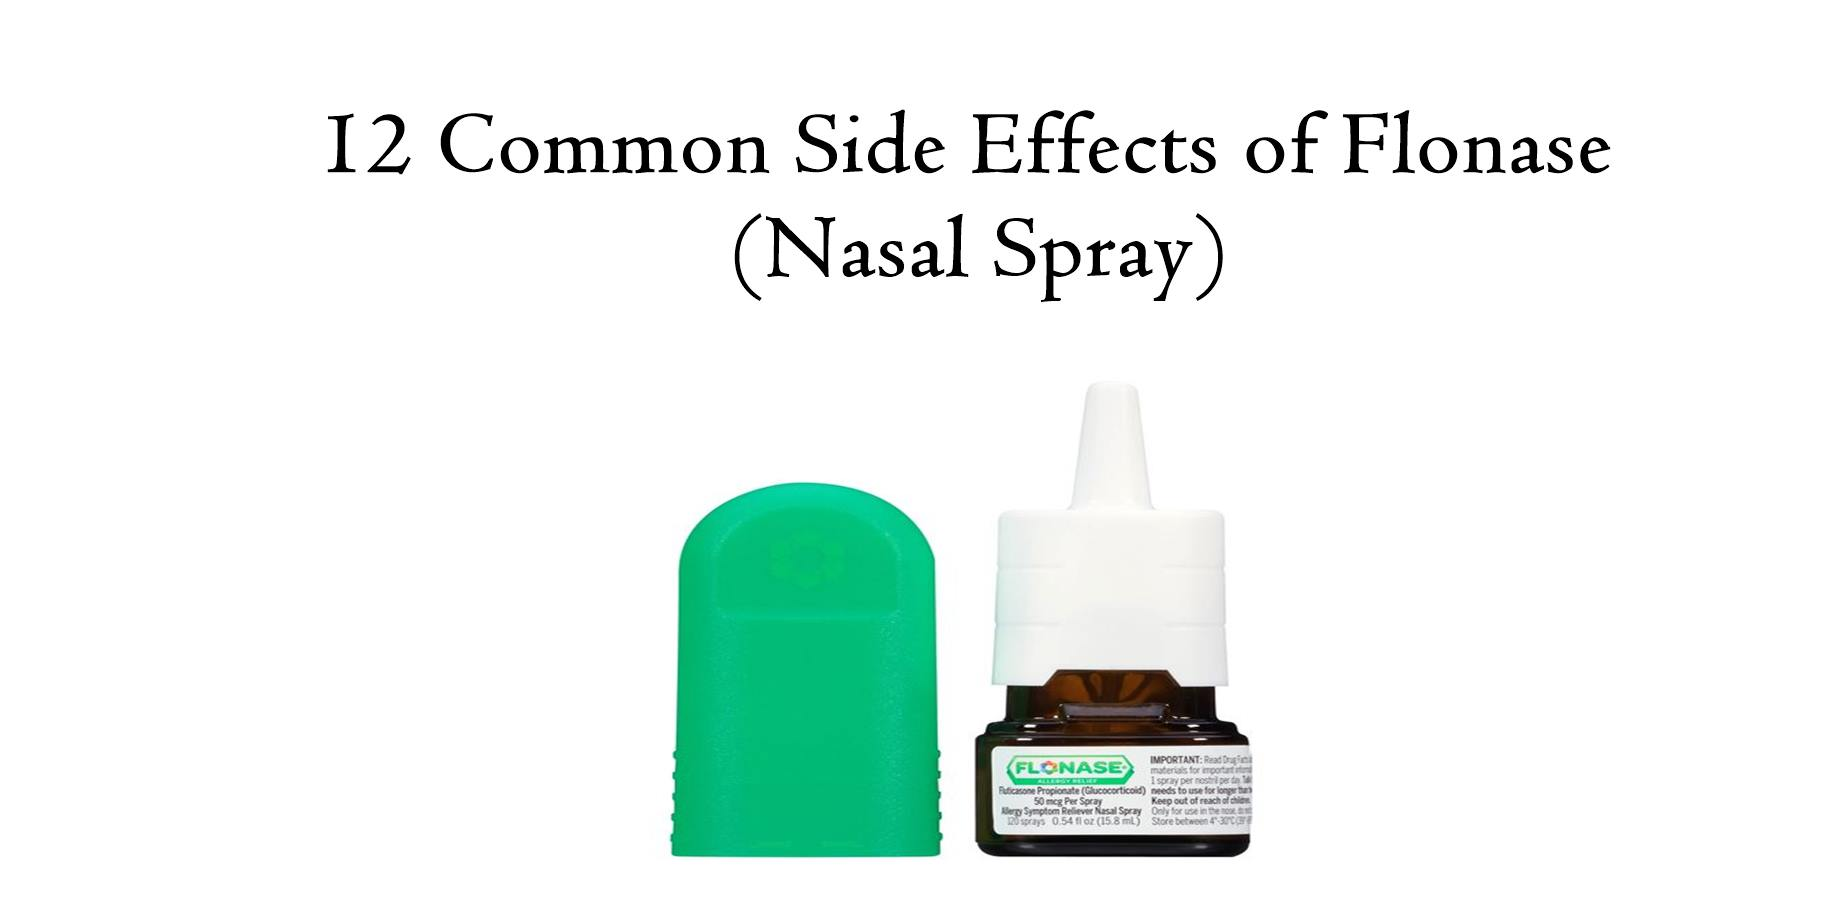 Flonase Nasal Spray 】 12 Common Side Effects